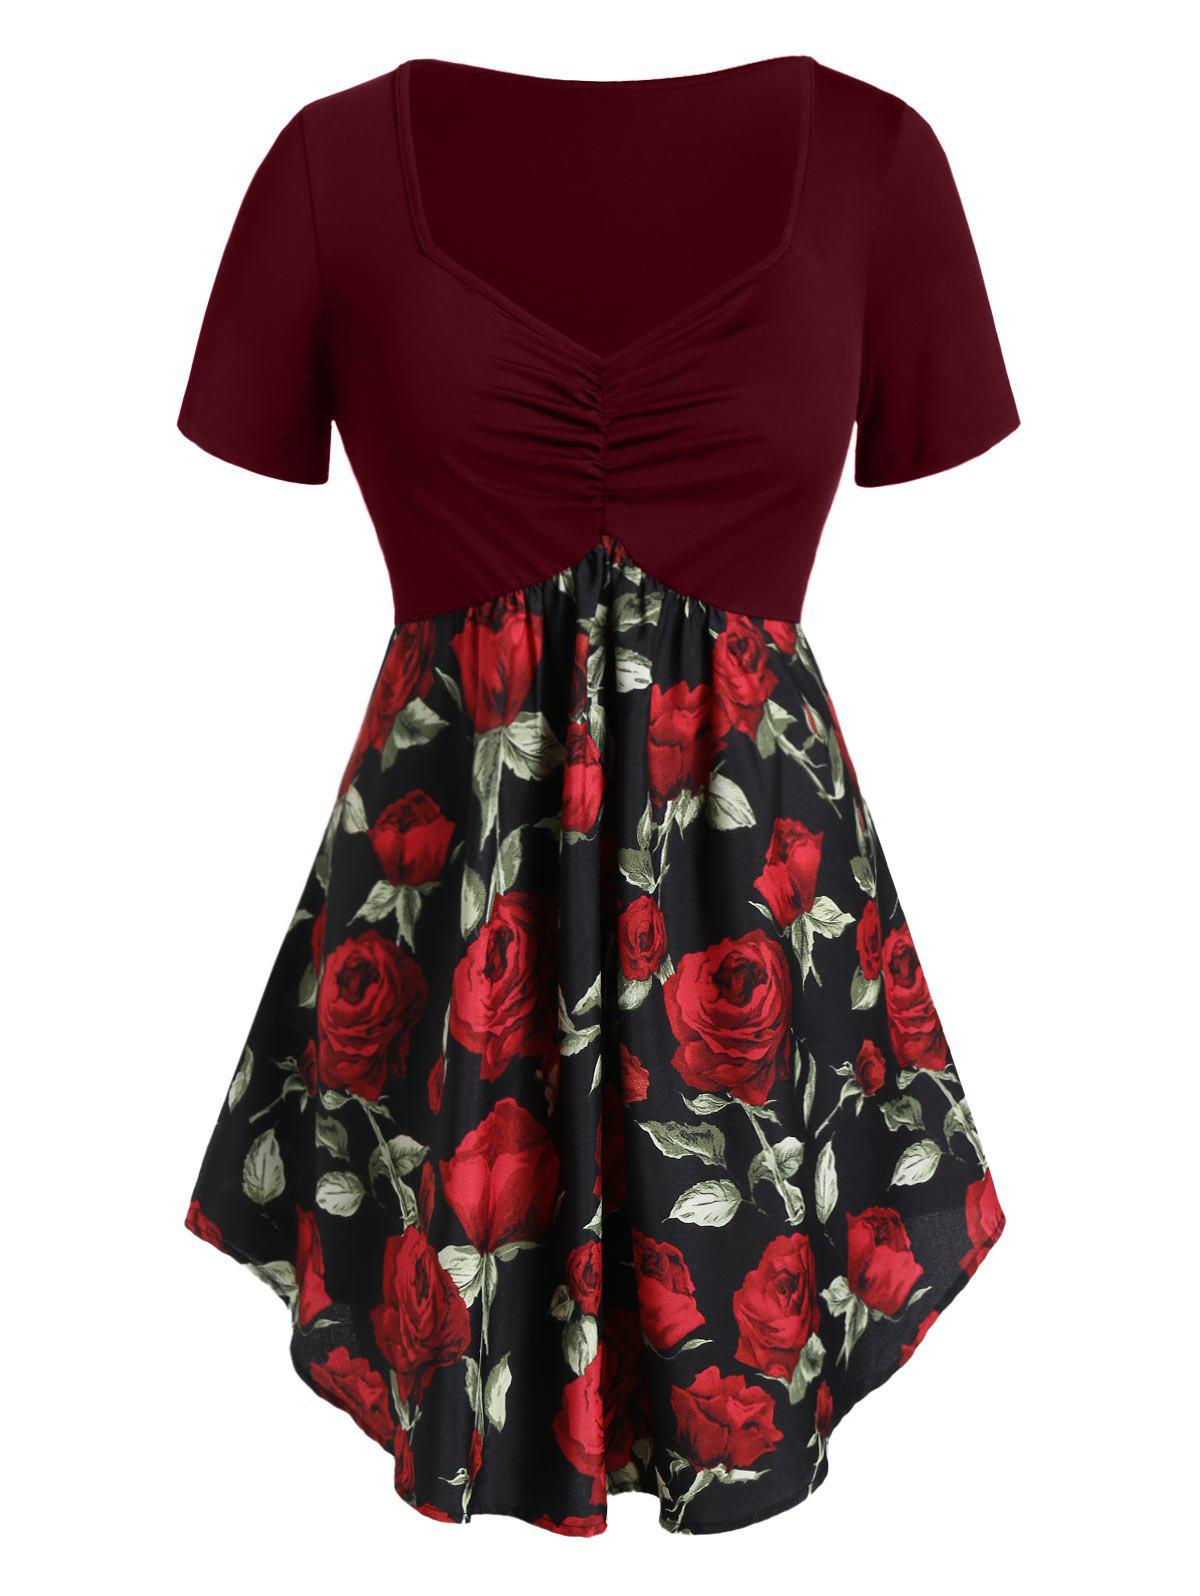 Plus Size Cinched Rose Print Tunic T Shirt - RED WINE 4X